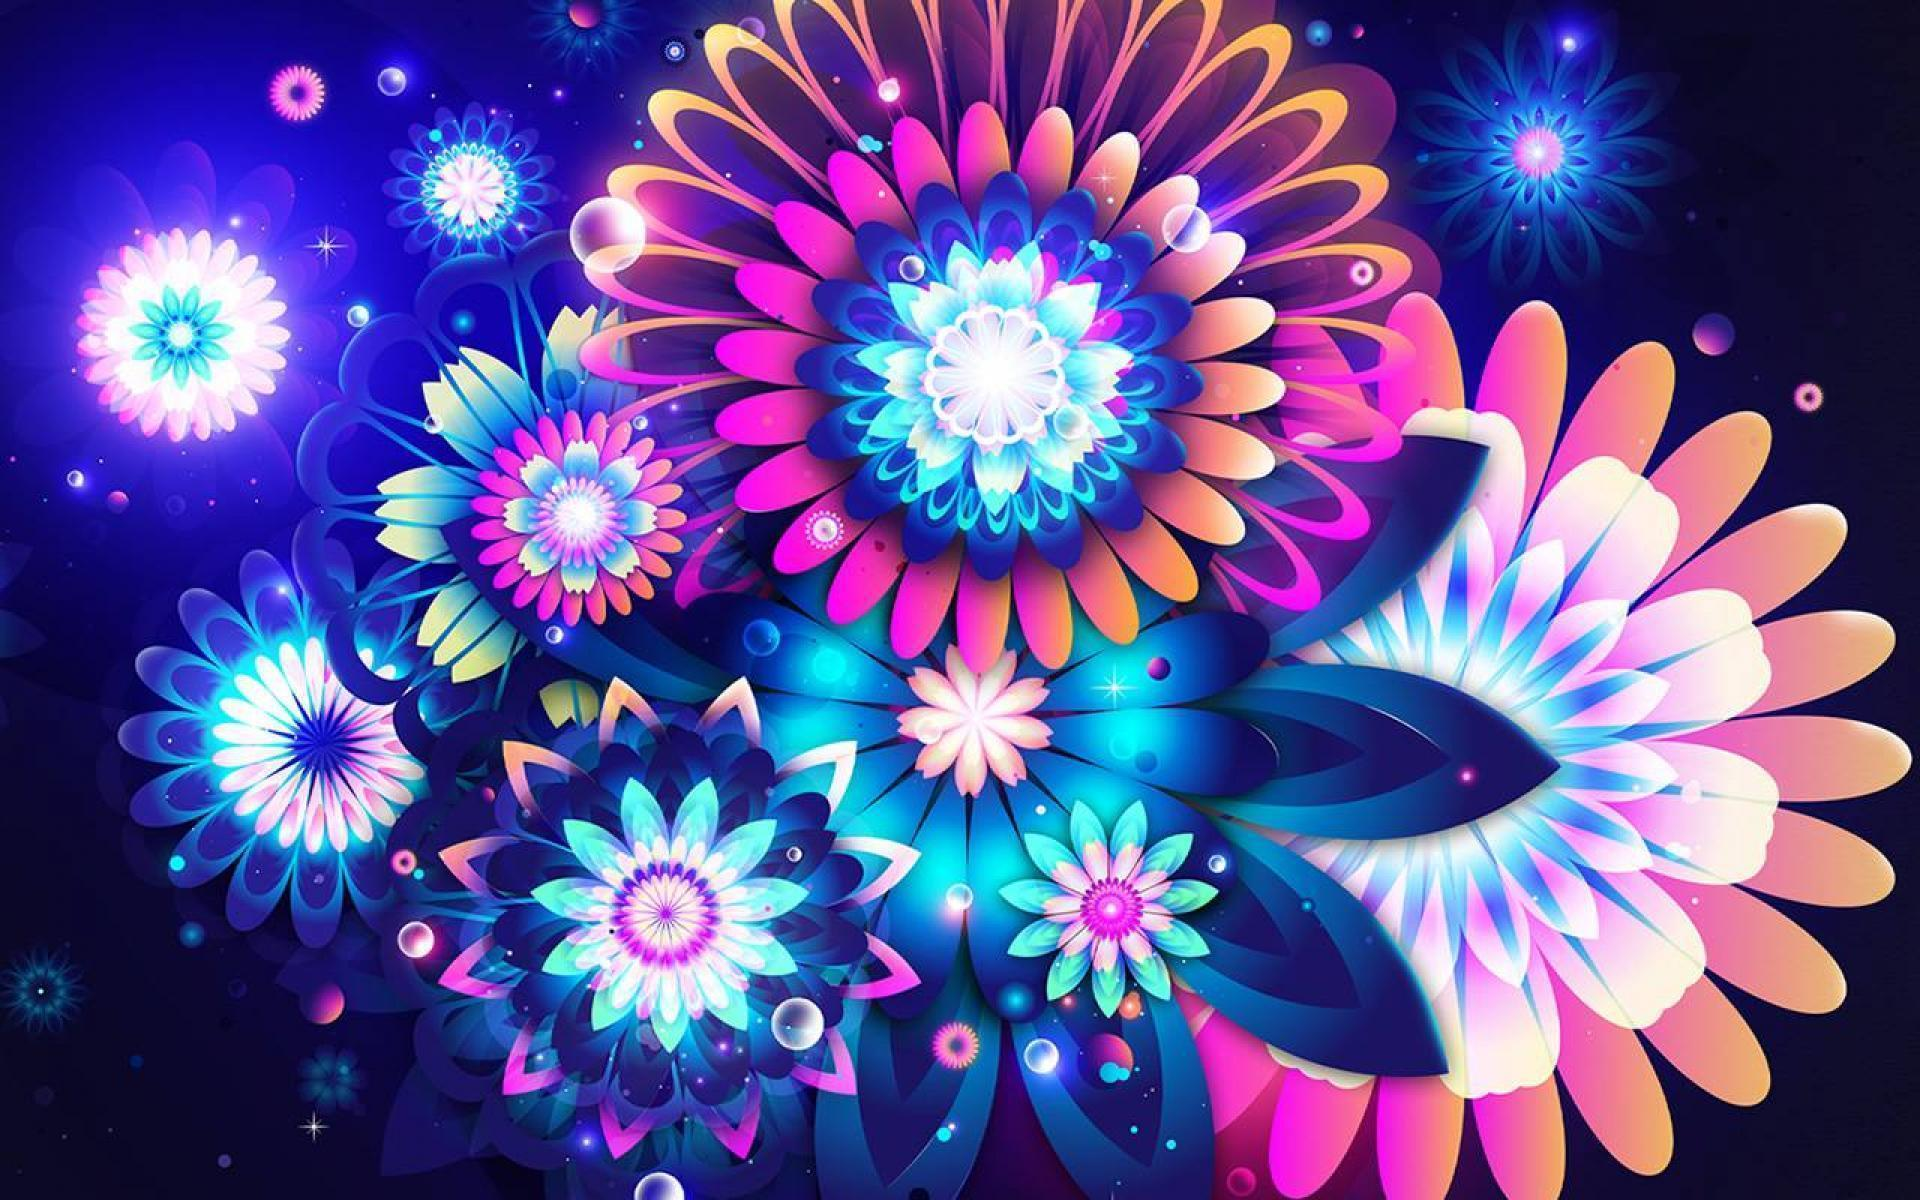 Colorful Wallpapers Designs - Wallpaper Cave - photo#11